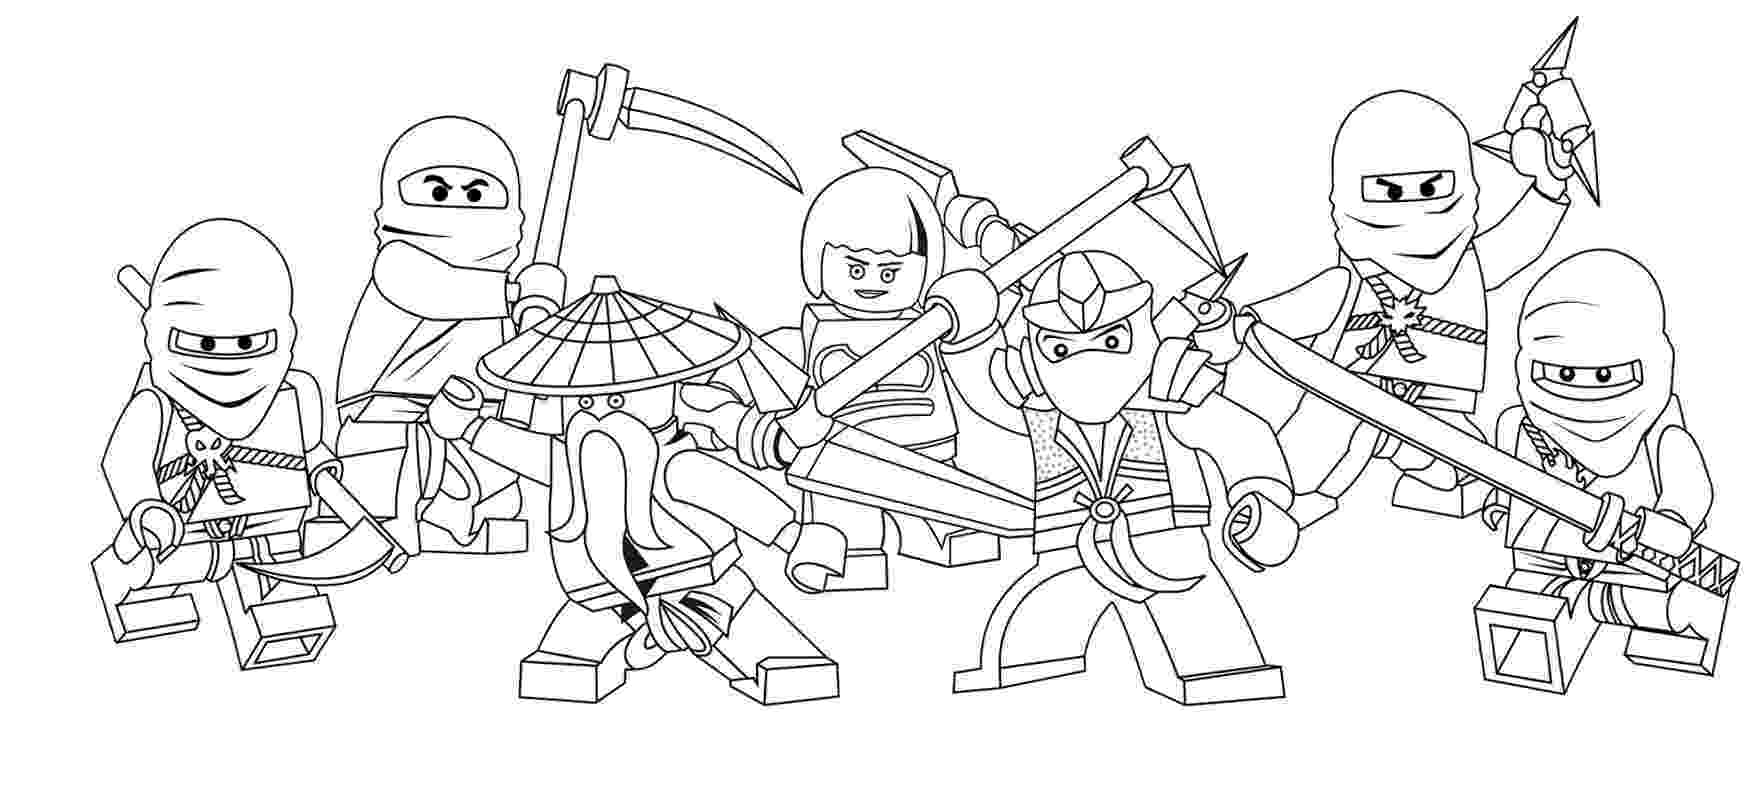 coloring pages of legos lego coloring pages with characters chima ninjago city coloring pages of legos